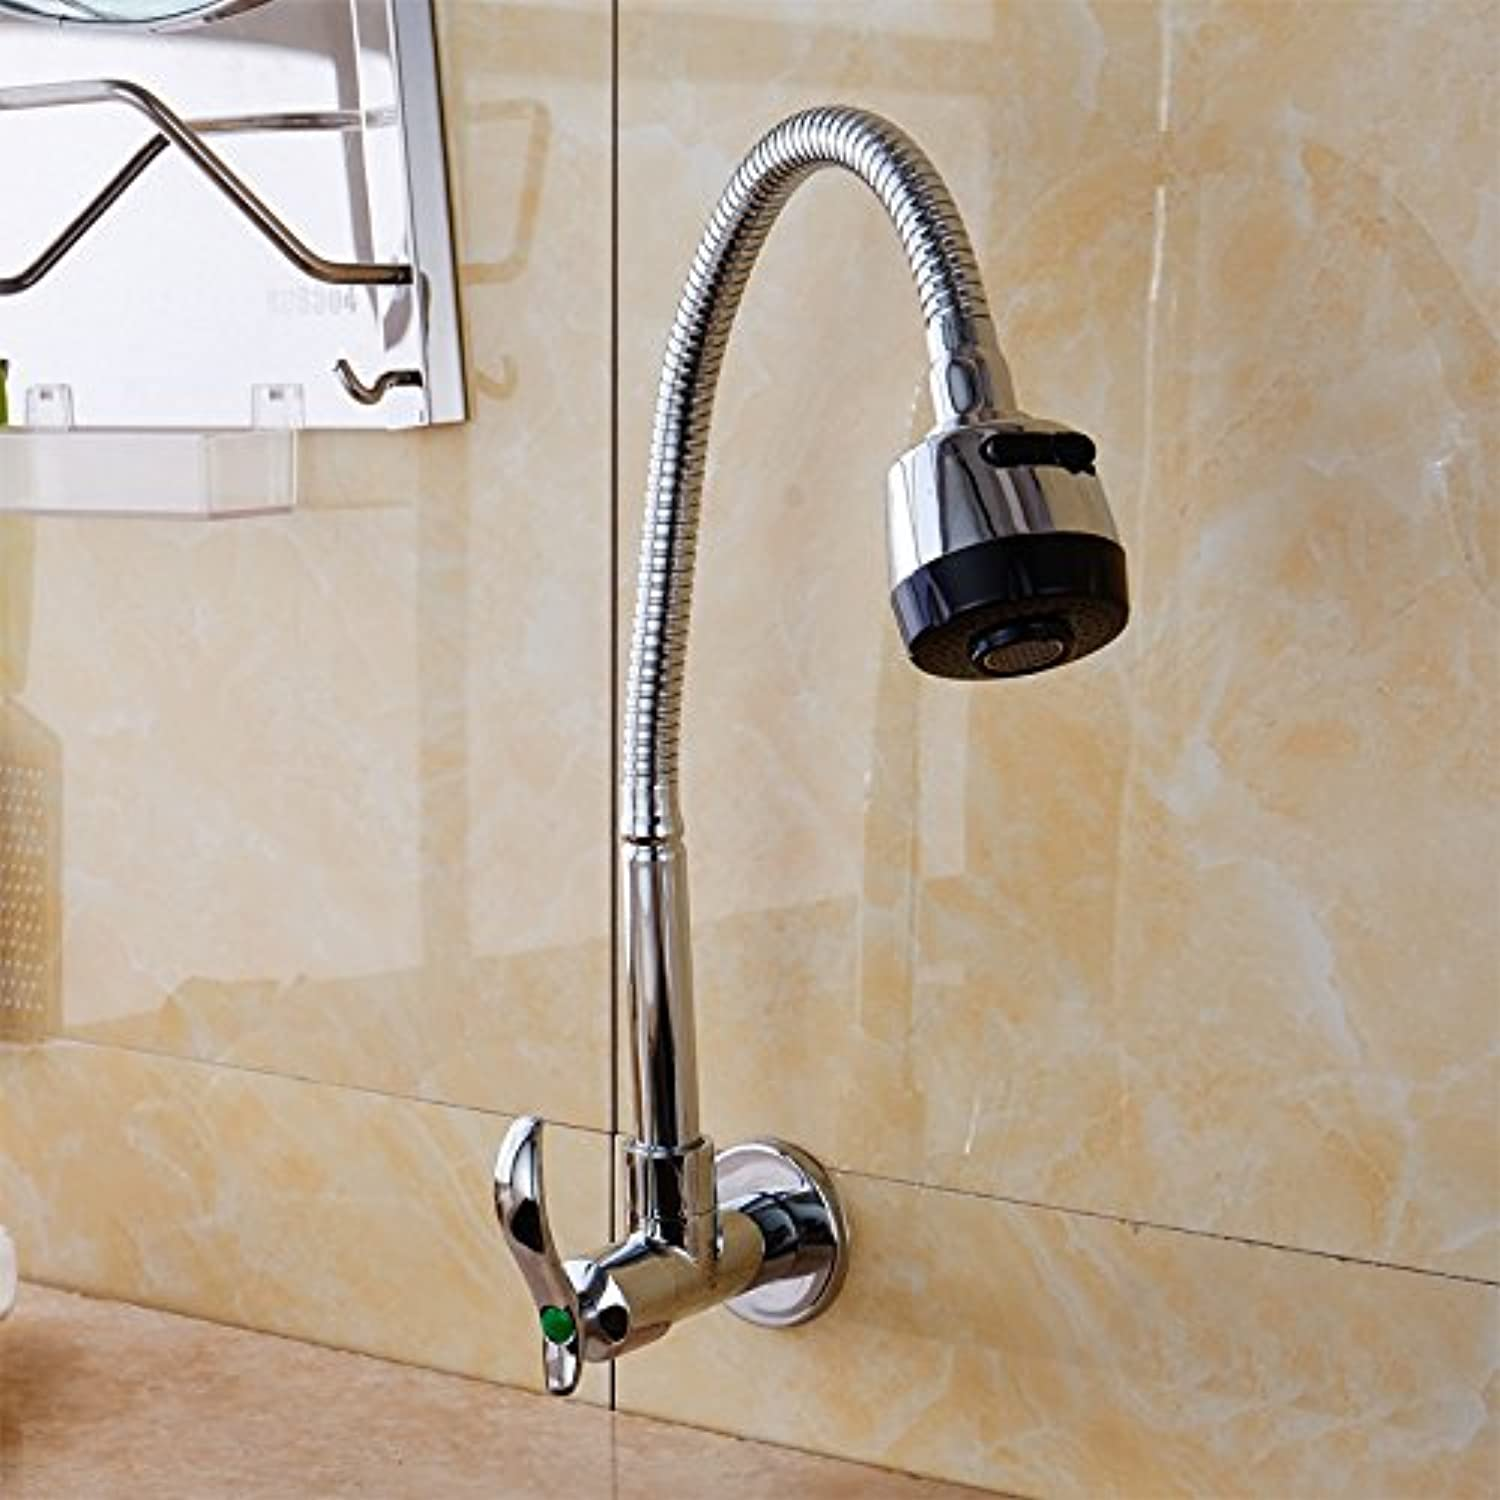 Vegetable Wash Basin Pool Balcony Mop Pool Kitchen Faucet Sink Into The Wall Type Single Cold Universal Long Neck Faucet